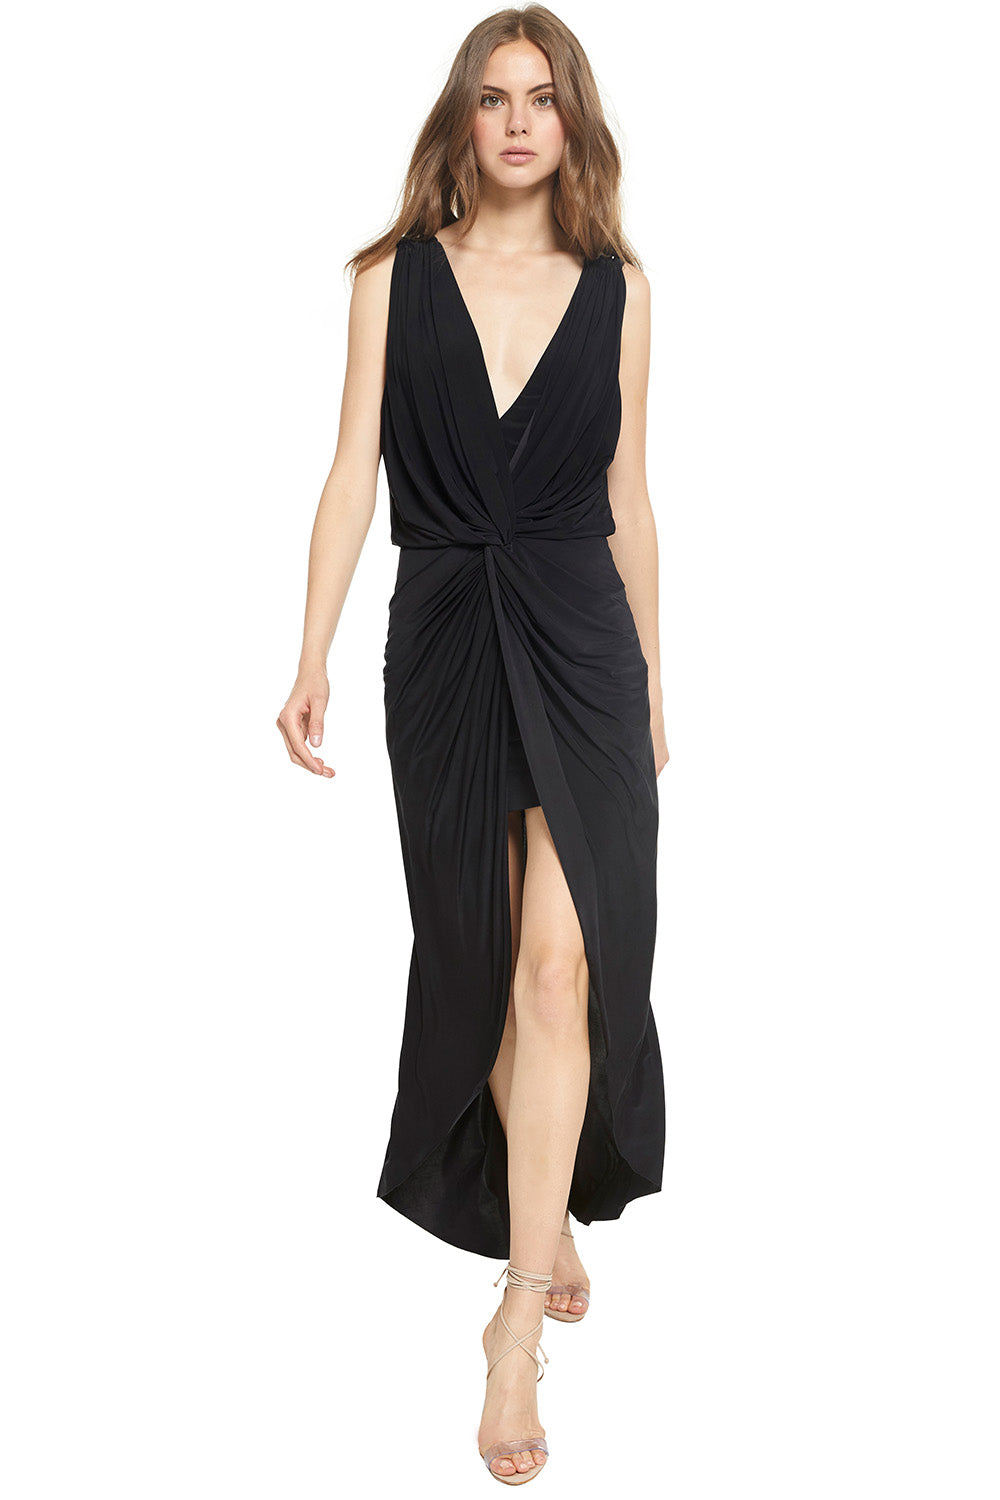 Leza Maxi Dress - MISA Los Angeles